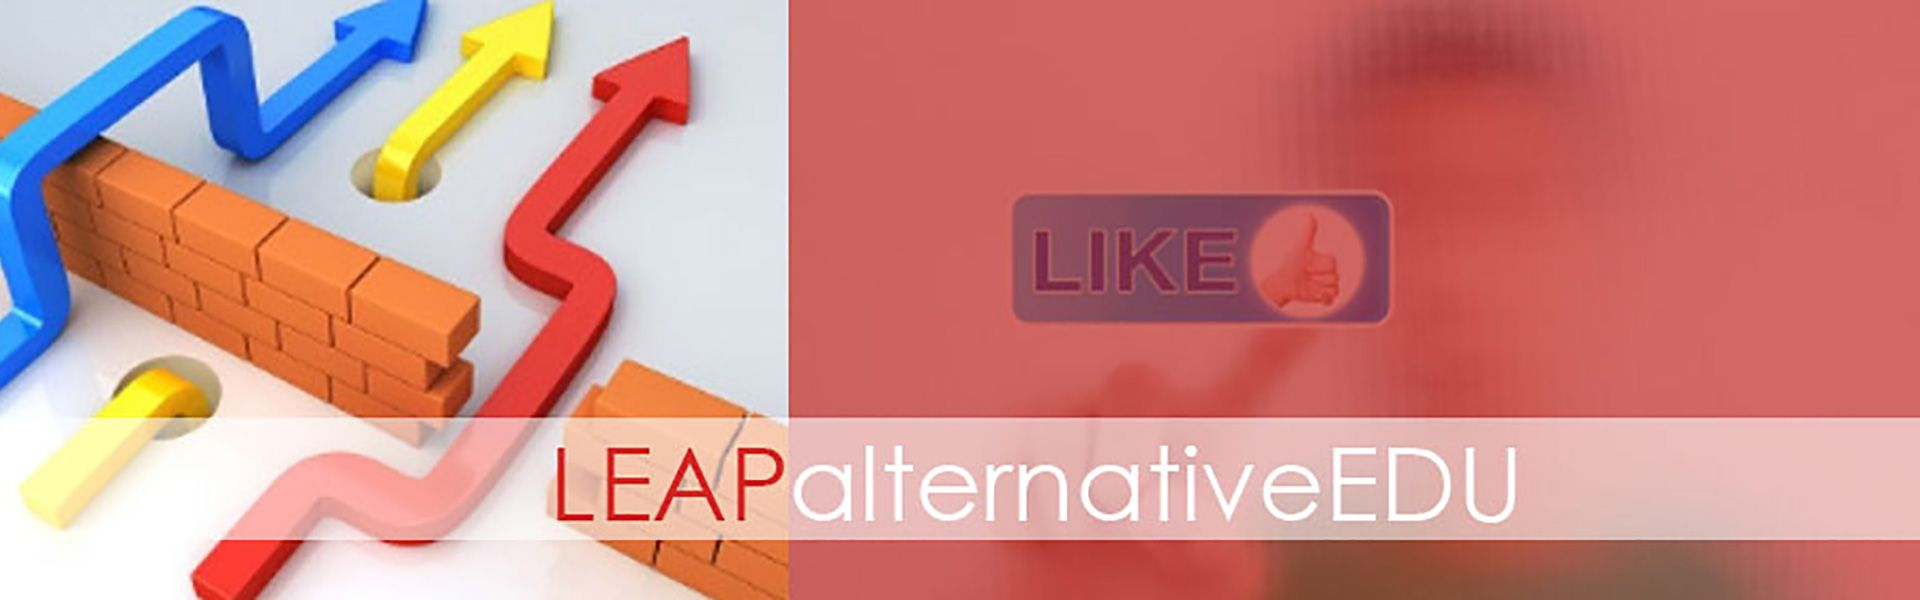 Leap Alternative